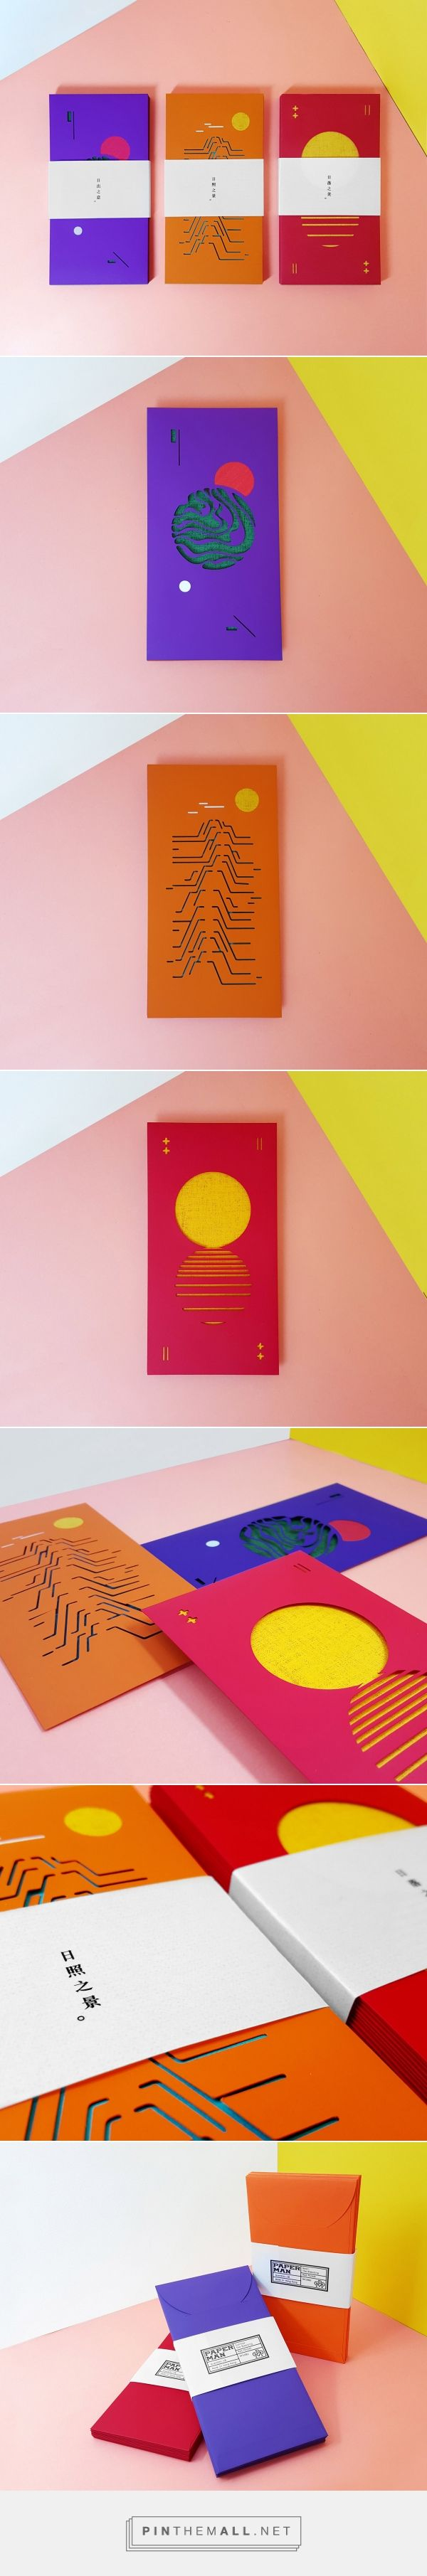 """Sunrise to Sunset Red pocket packaging on Behance by K. Ko Hong Kong, Hong  Kong curated by Packaging Diva PD. A set of 3 designs with the theme """"The sun"""". 3 means eternal in Chinese tradition."""